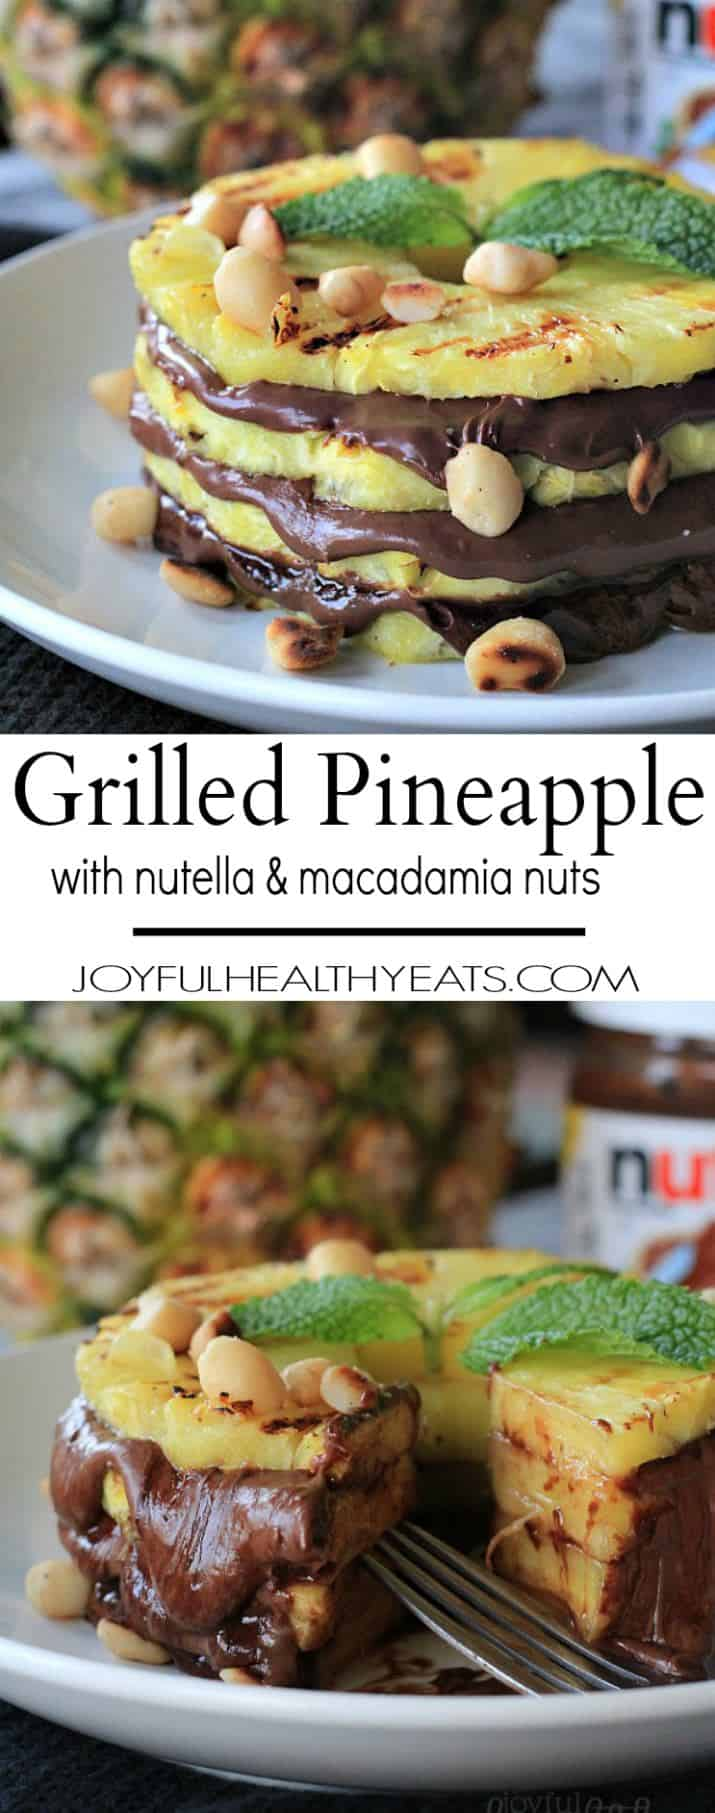 Recipe collage for Grilled Pineapple with Nutella and Macadamia Nuts